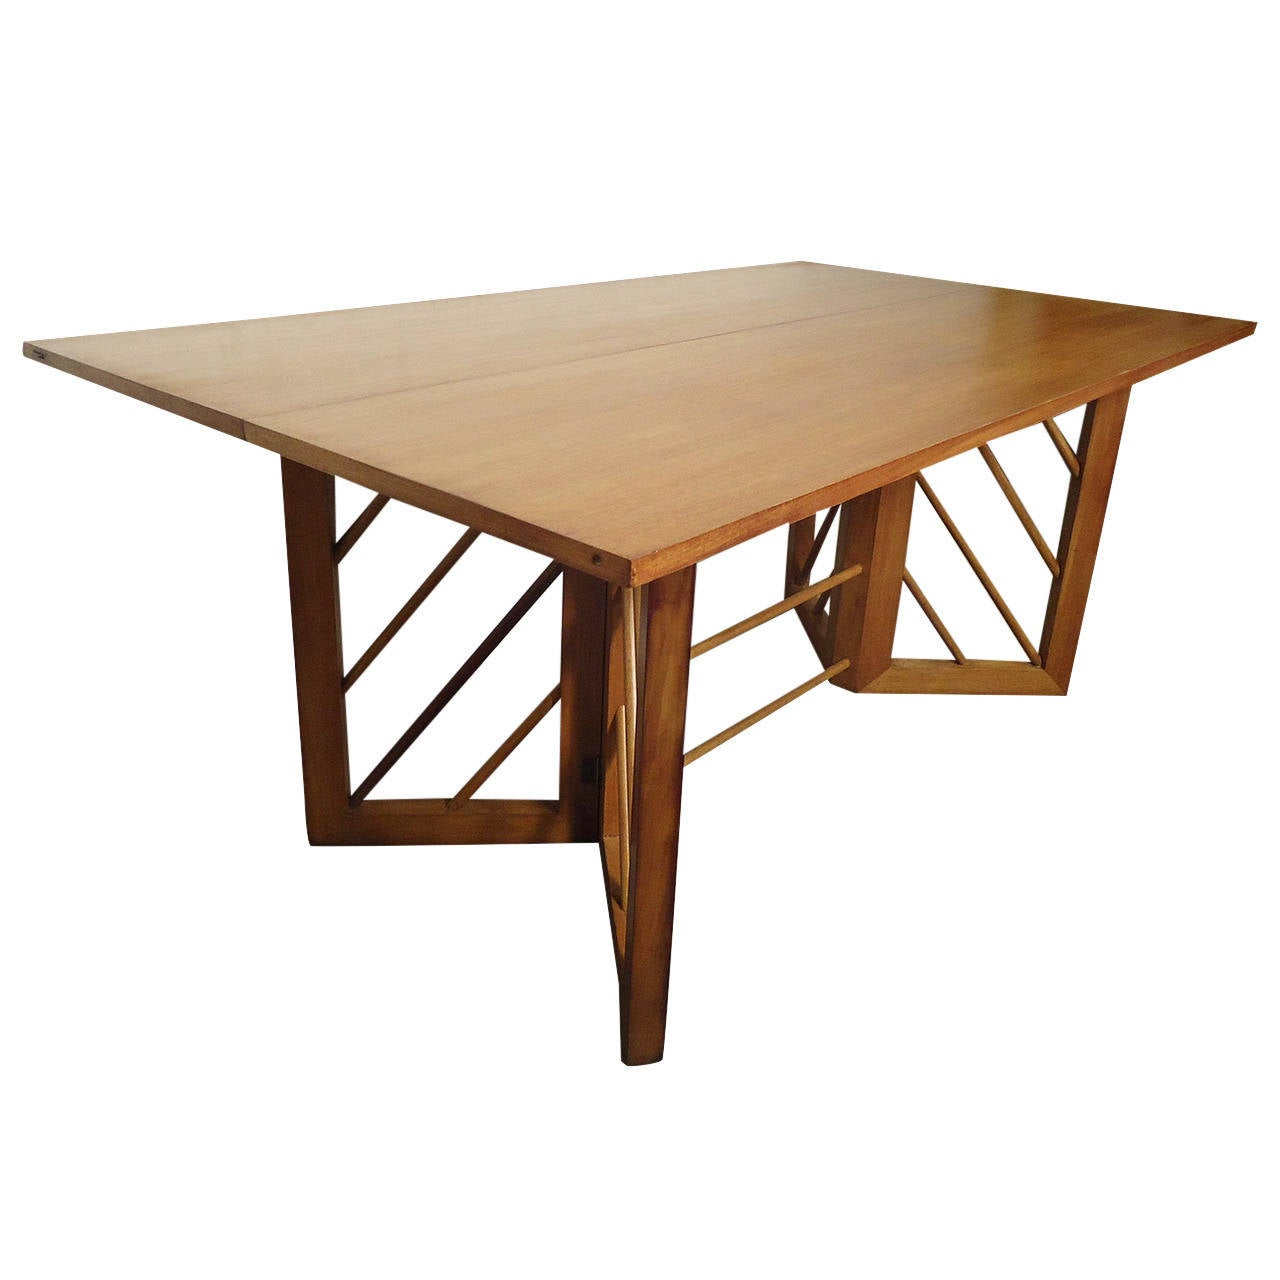 Captivating Mid Century Modern Folding Console Or Dining Table 1